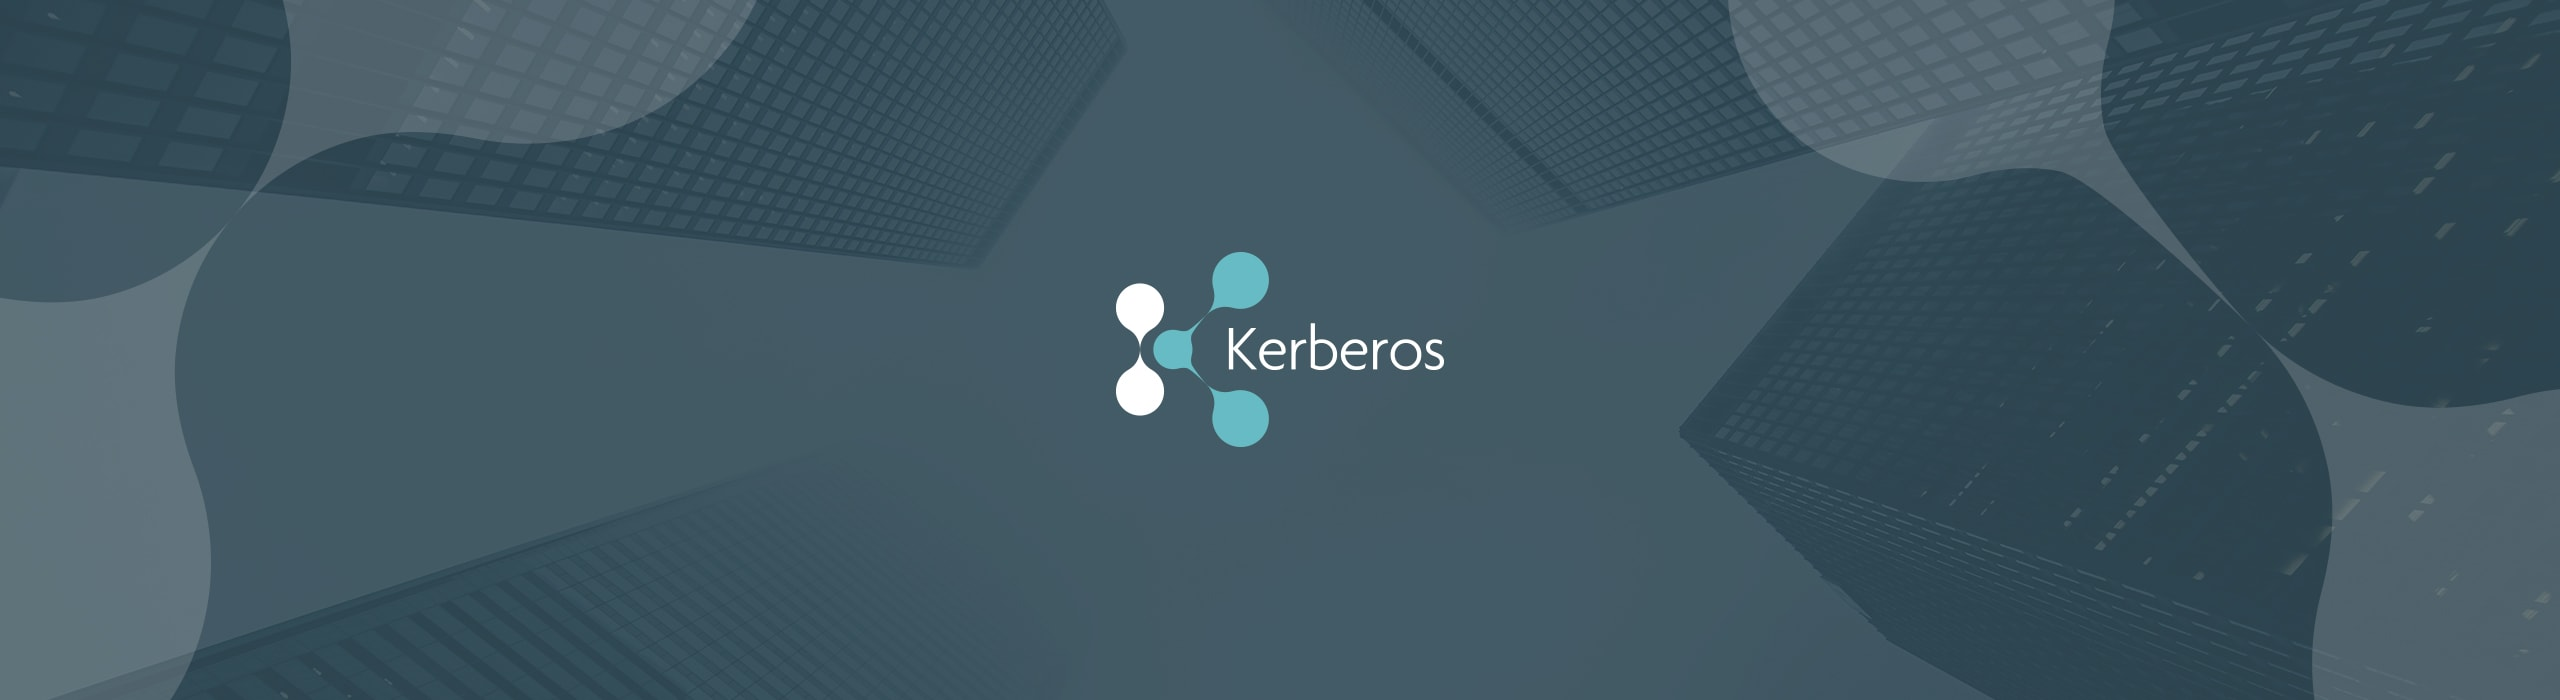 Kerberos - header - Natie Branding Agency